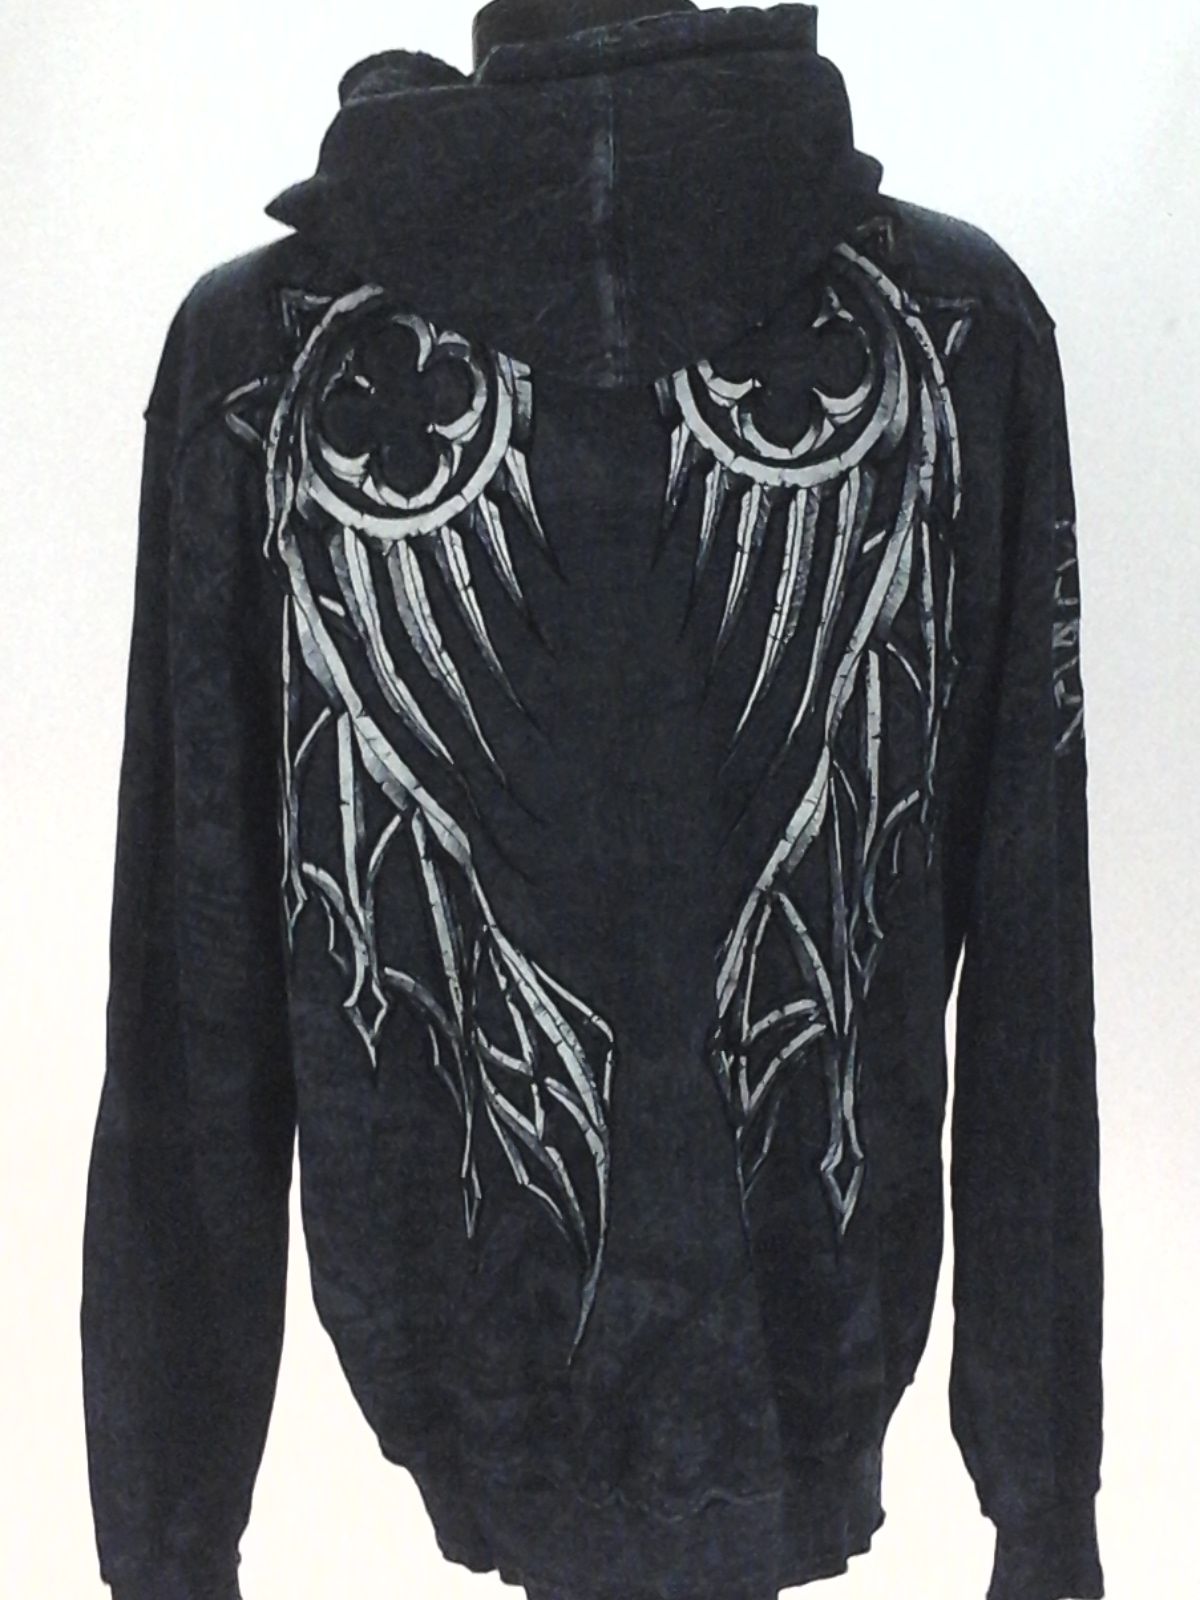 6ab119a610 AFFLICTION Hoodie Jacket Black Gray Angel Wings Distressed Zip USA Made  Men s XL